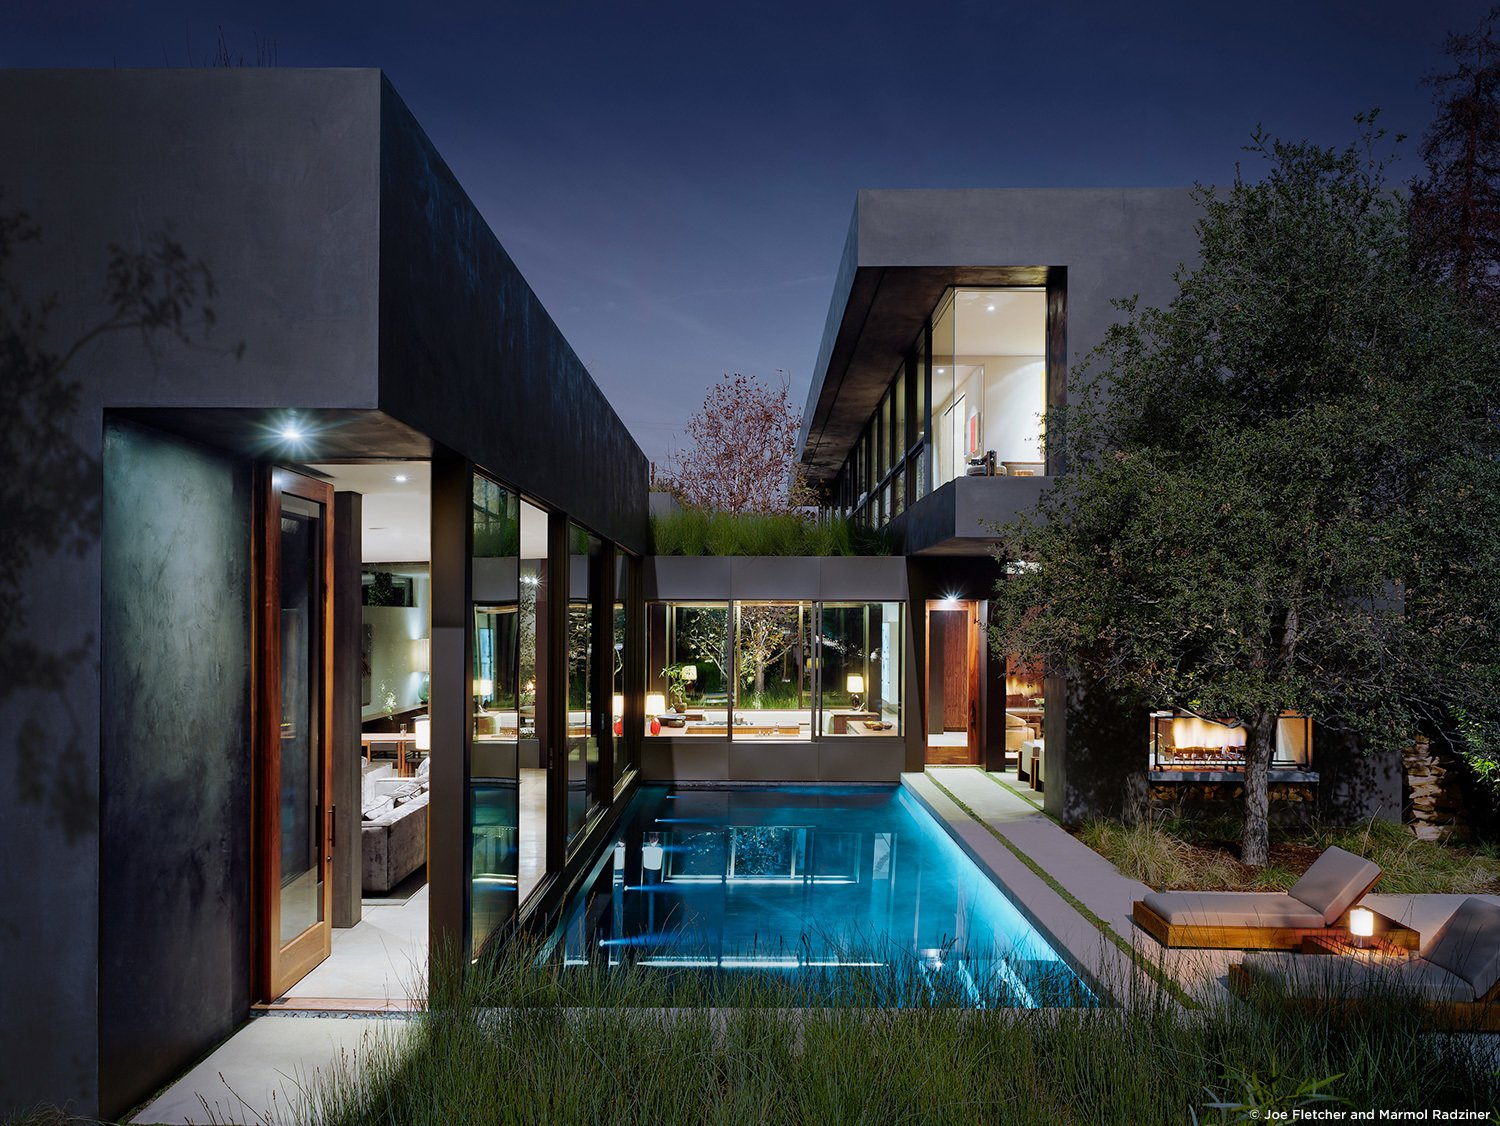 #ViennaWayResidence #modern #midcentury #exterior #outside #outdoors #landscape #structure #geometry #lighting #pool #green #Venice #California #MarmolRadziner